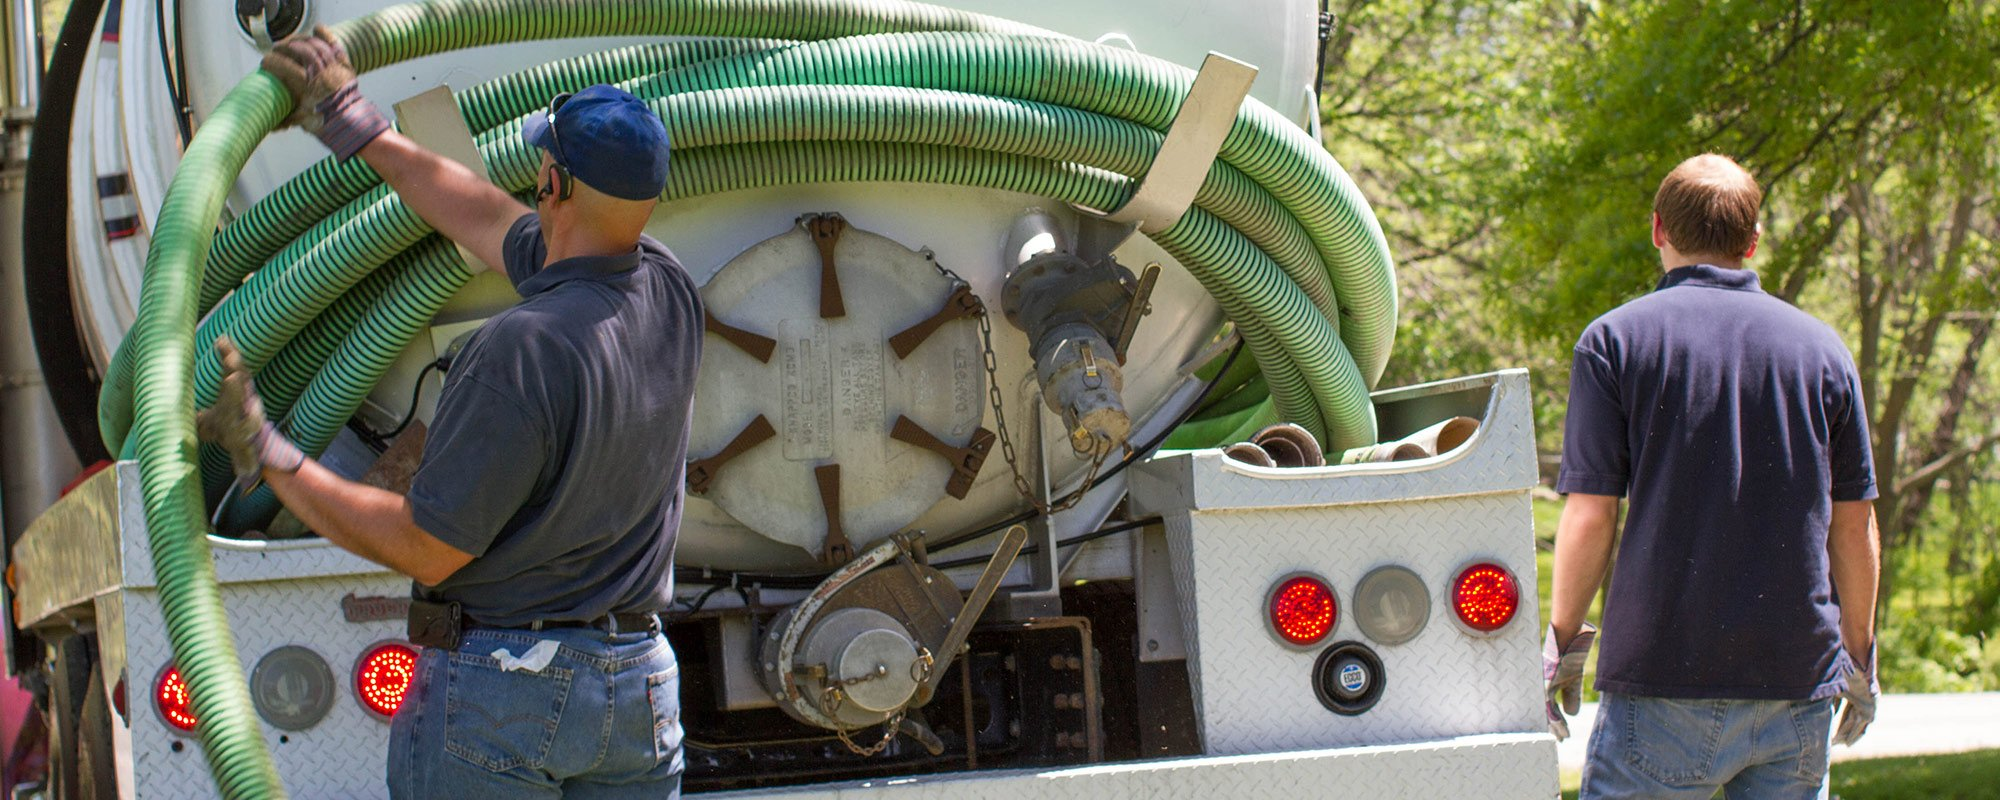 Septic Tank Pumping & Grease Trap Cleaning - Honey Wagon